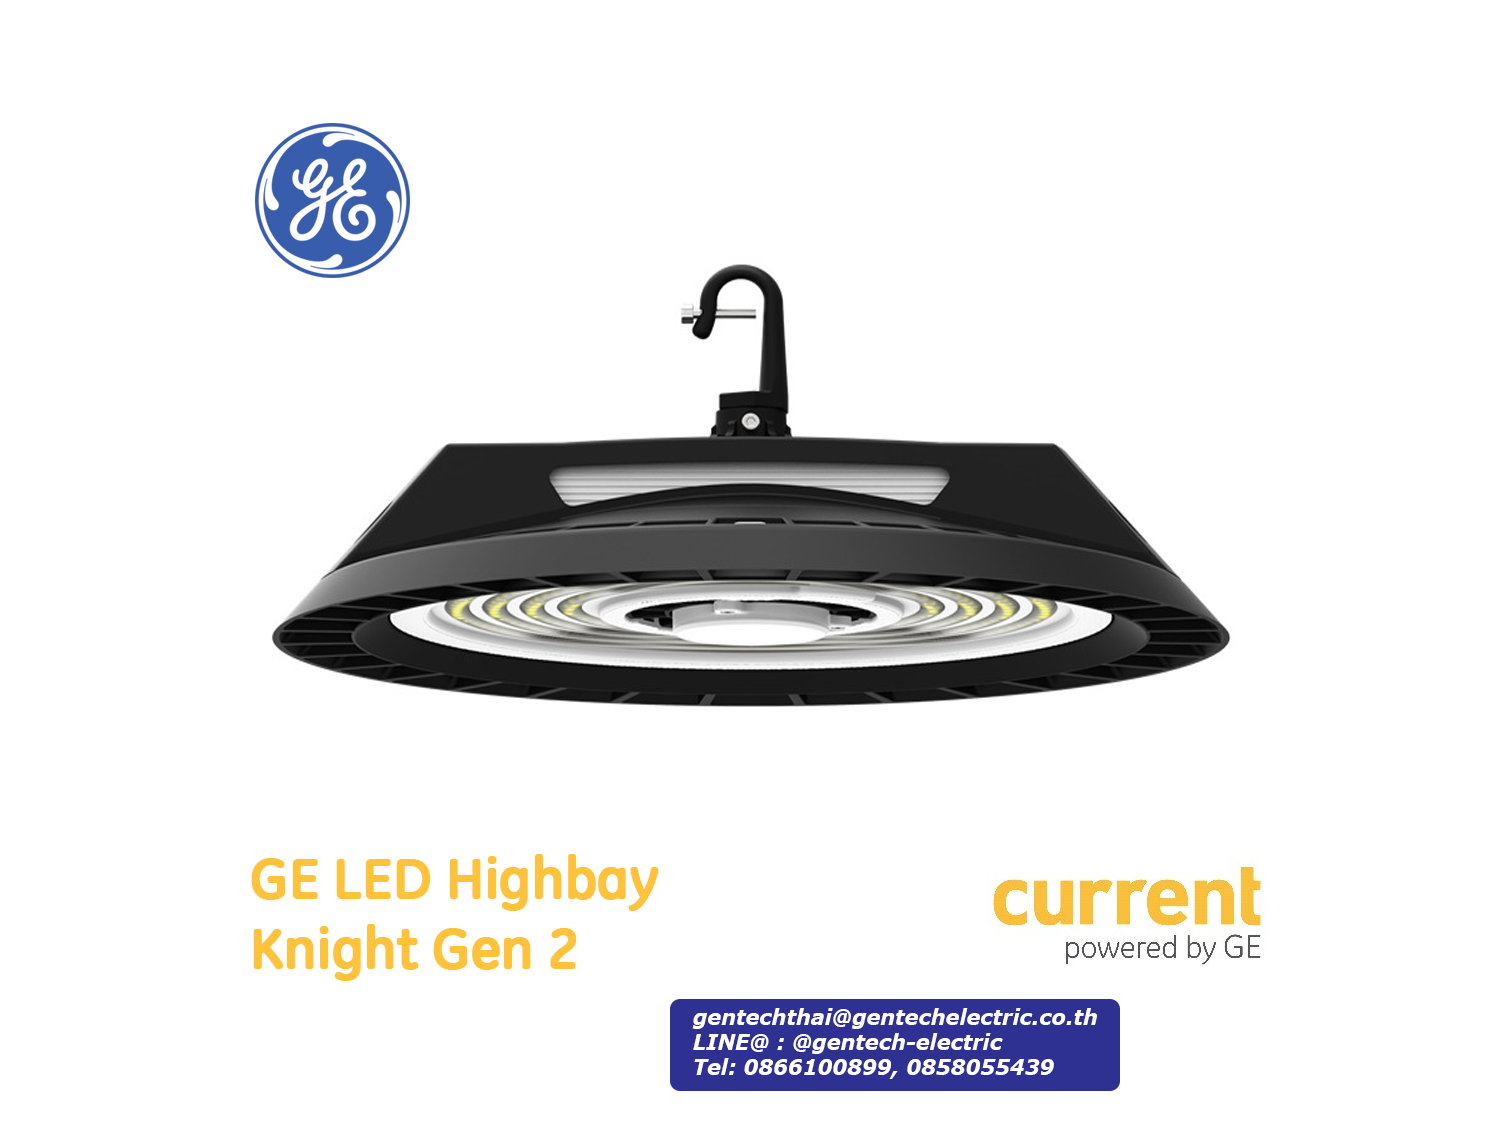 GE LED Highbay- Knight Gen 2